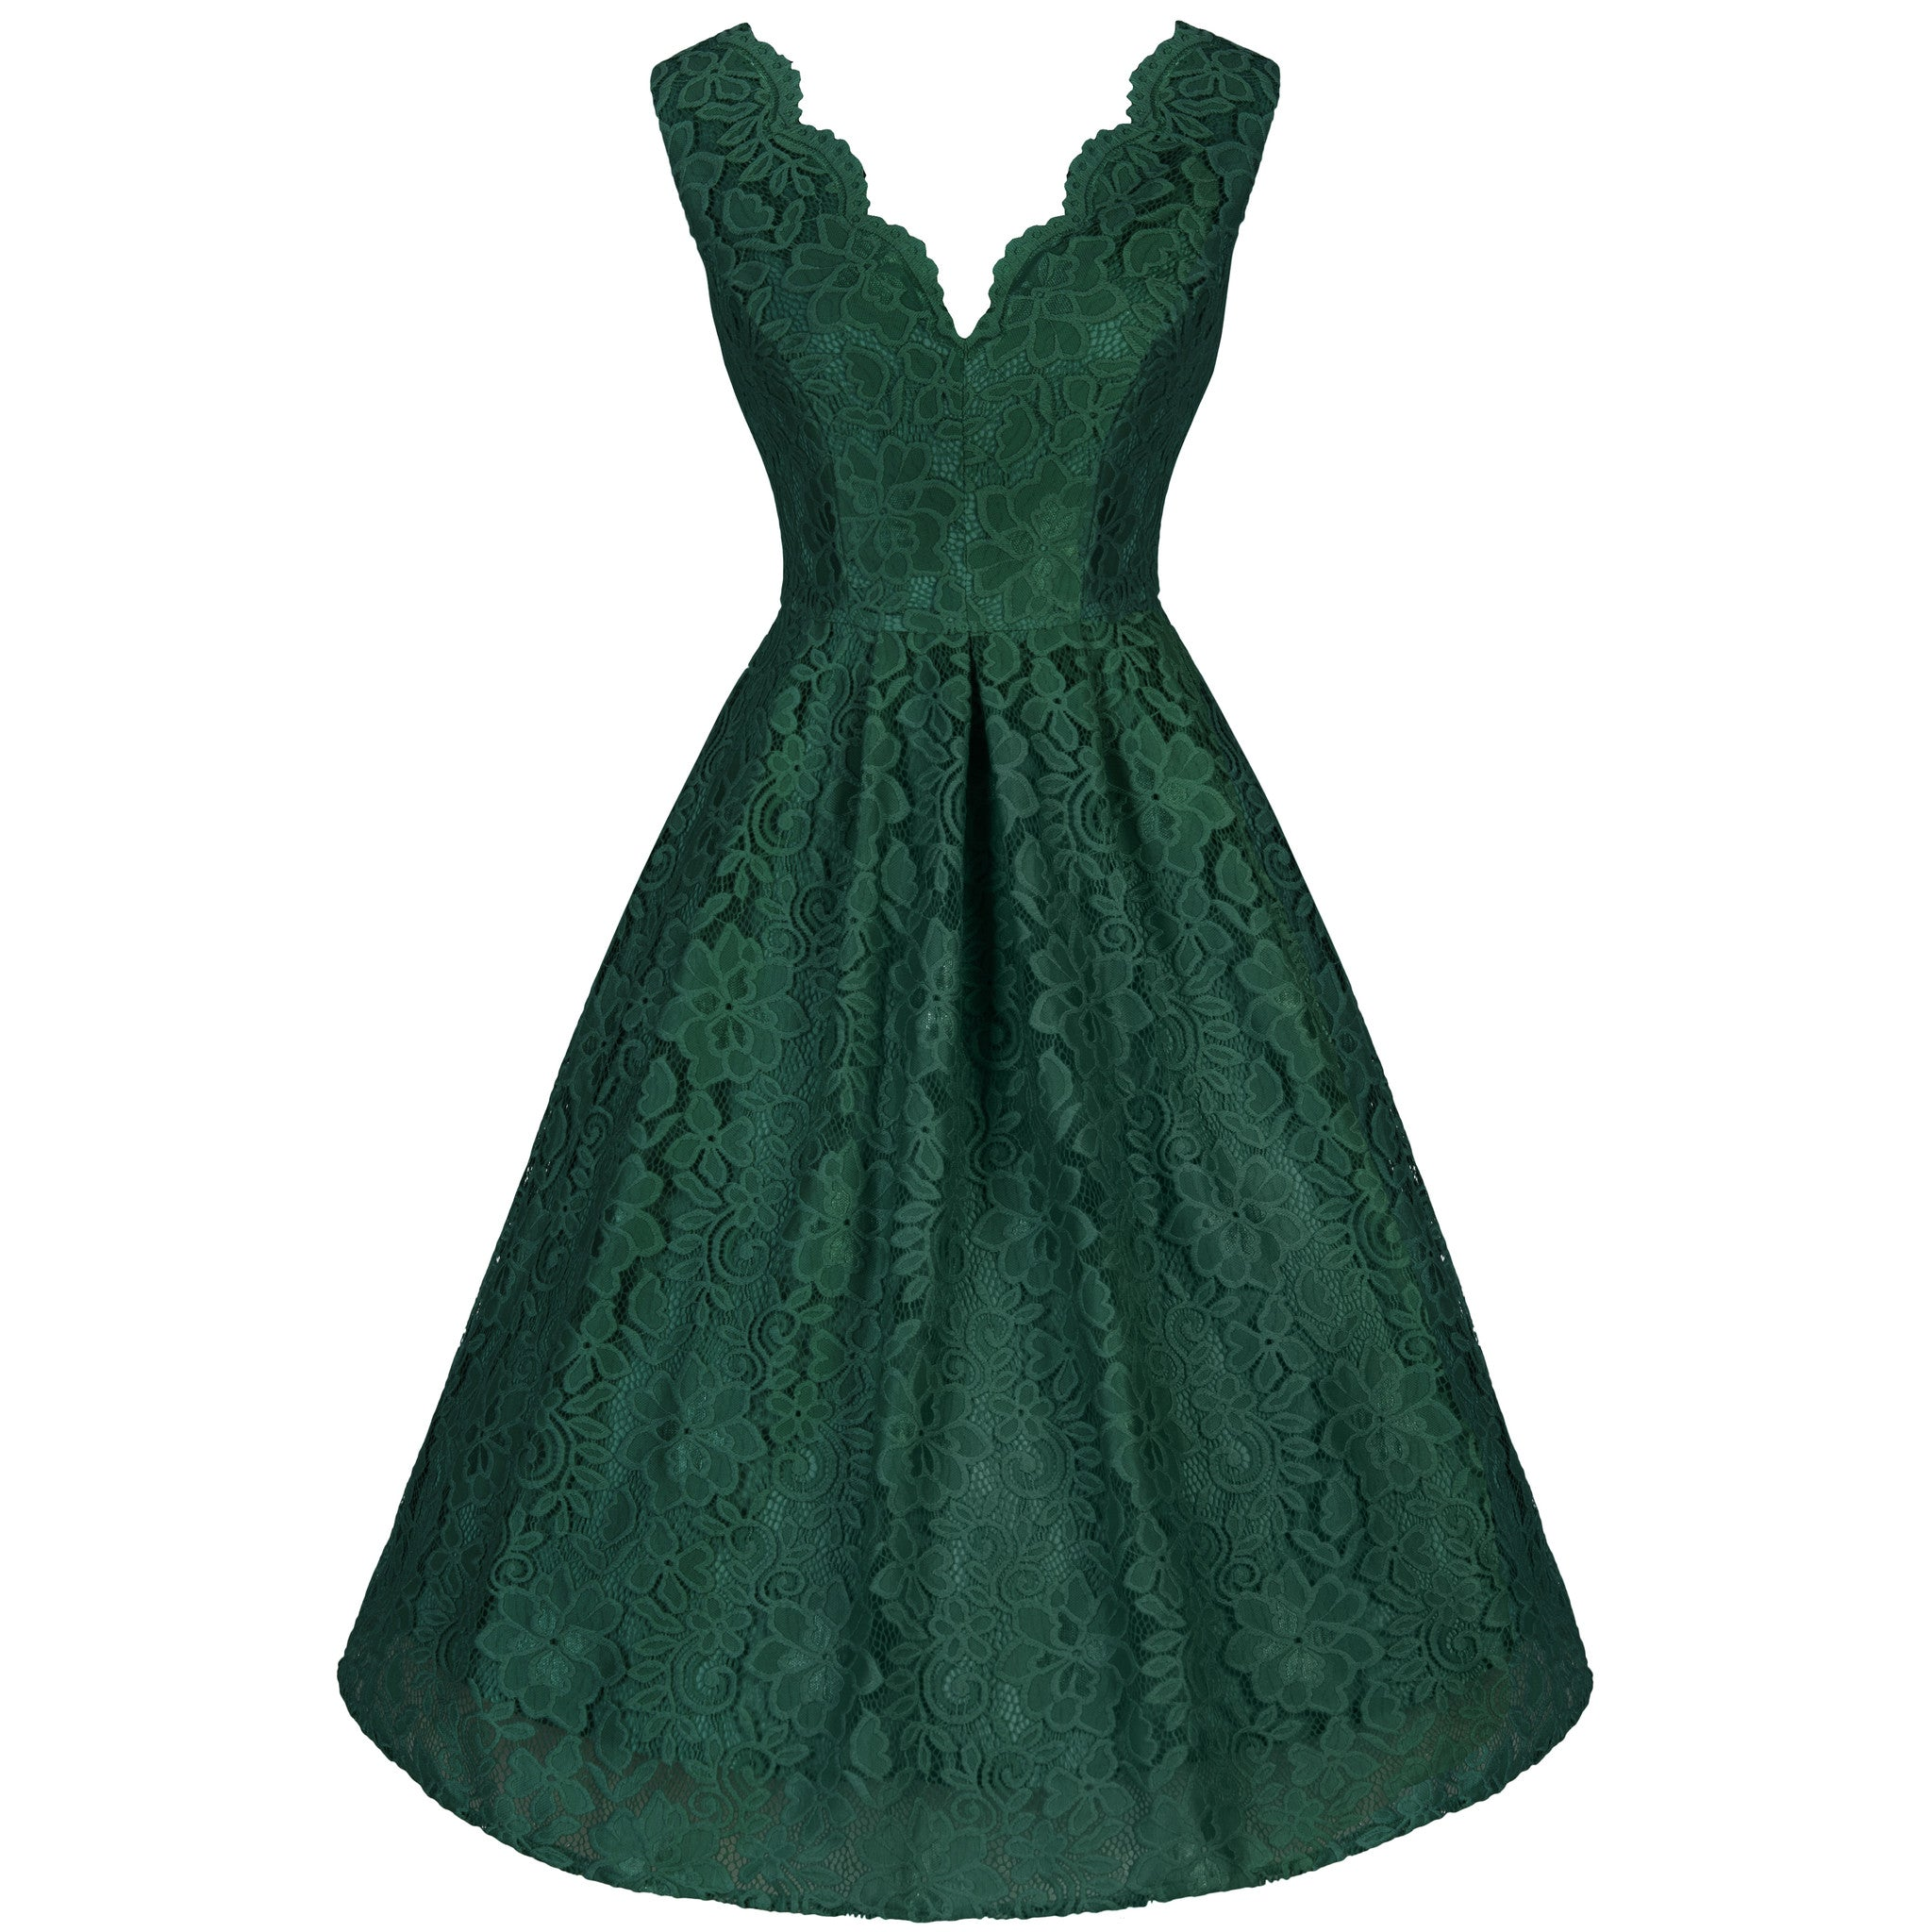 Emerald Lace Dress